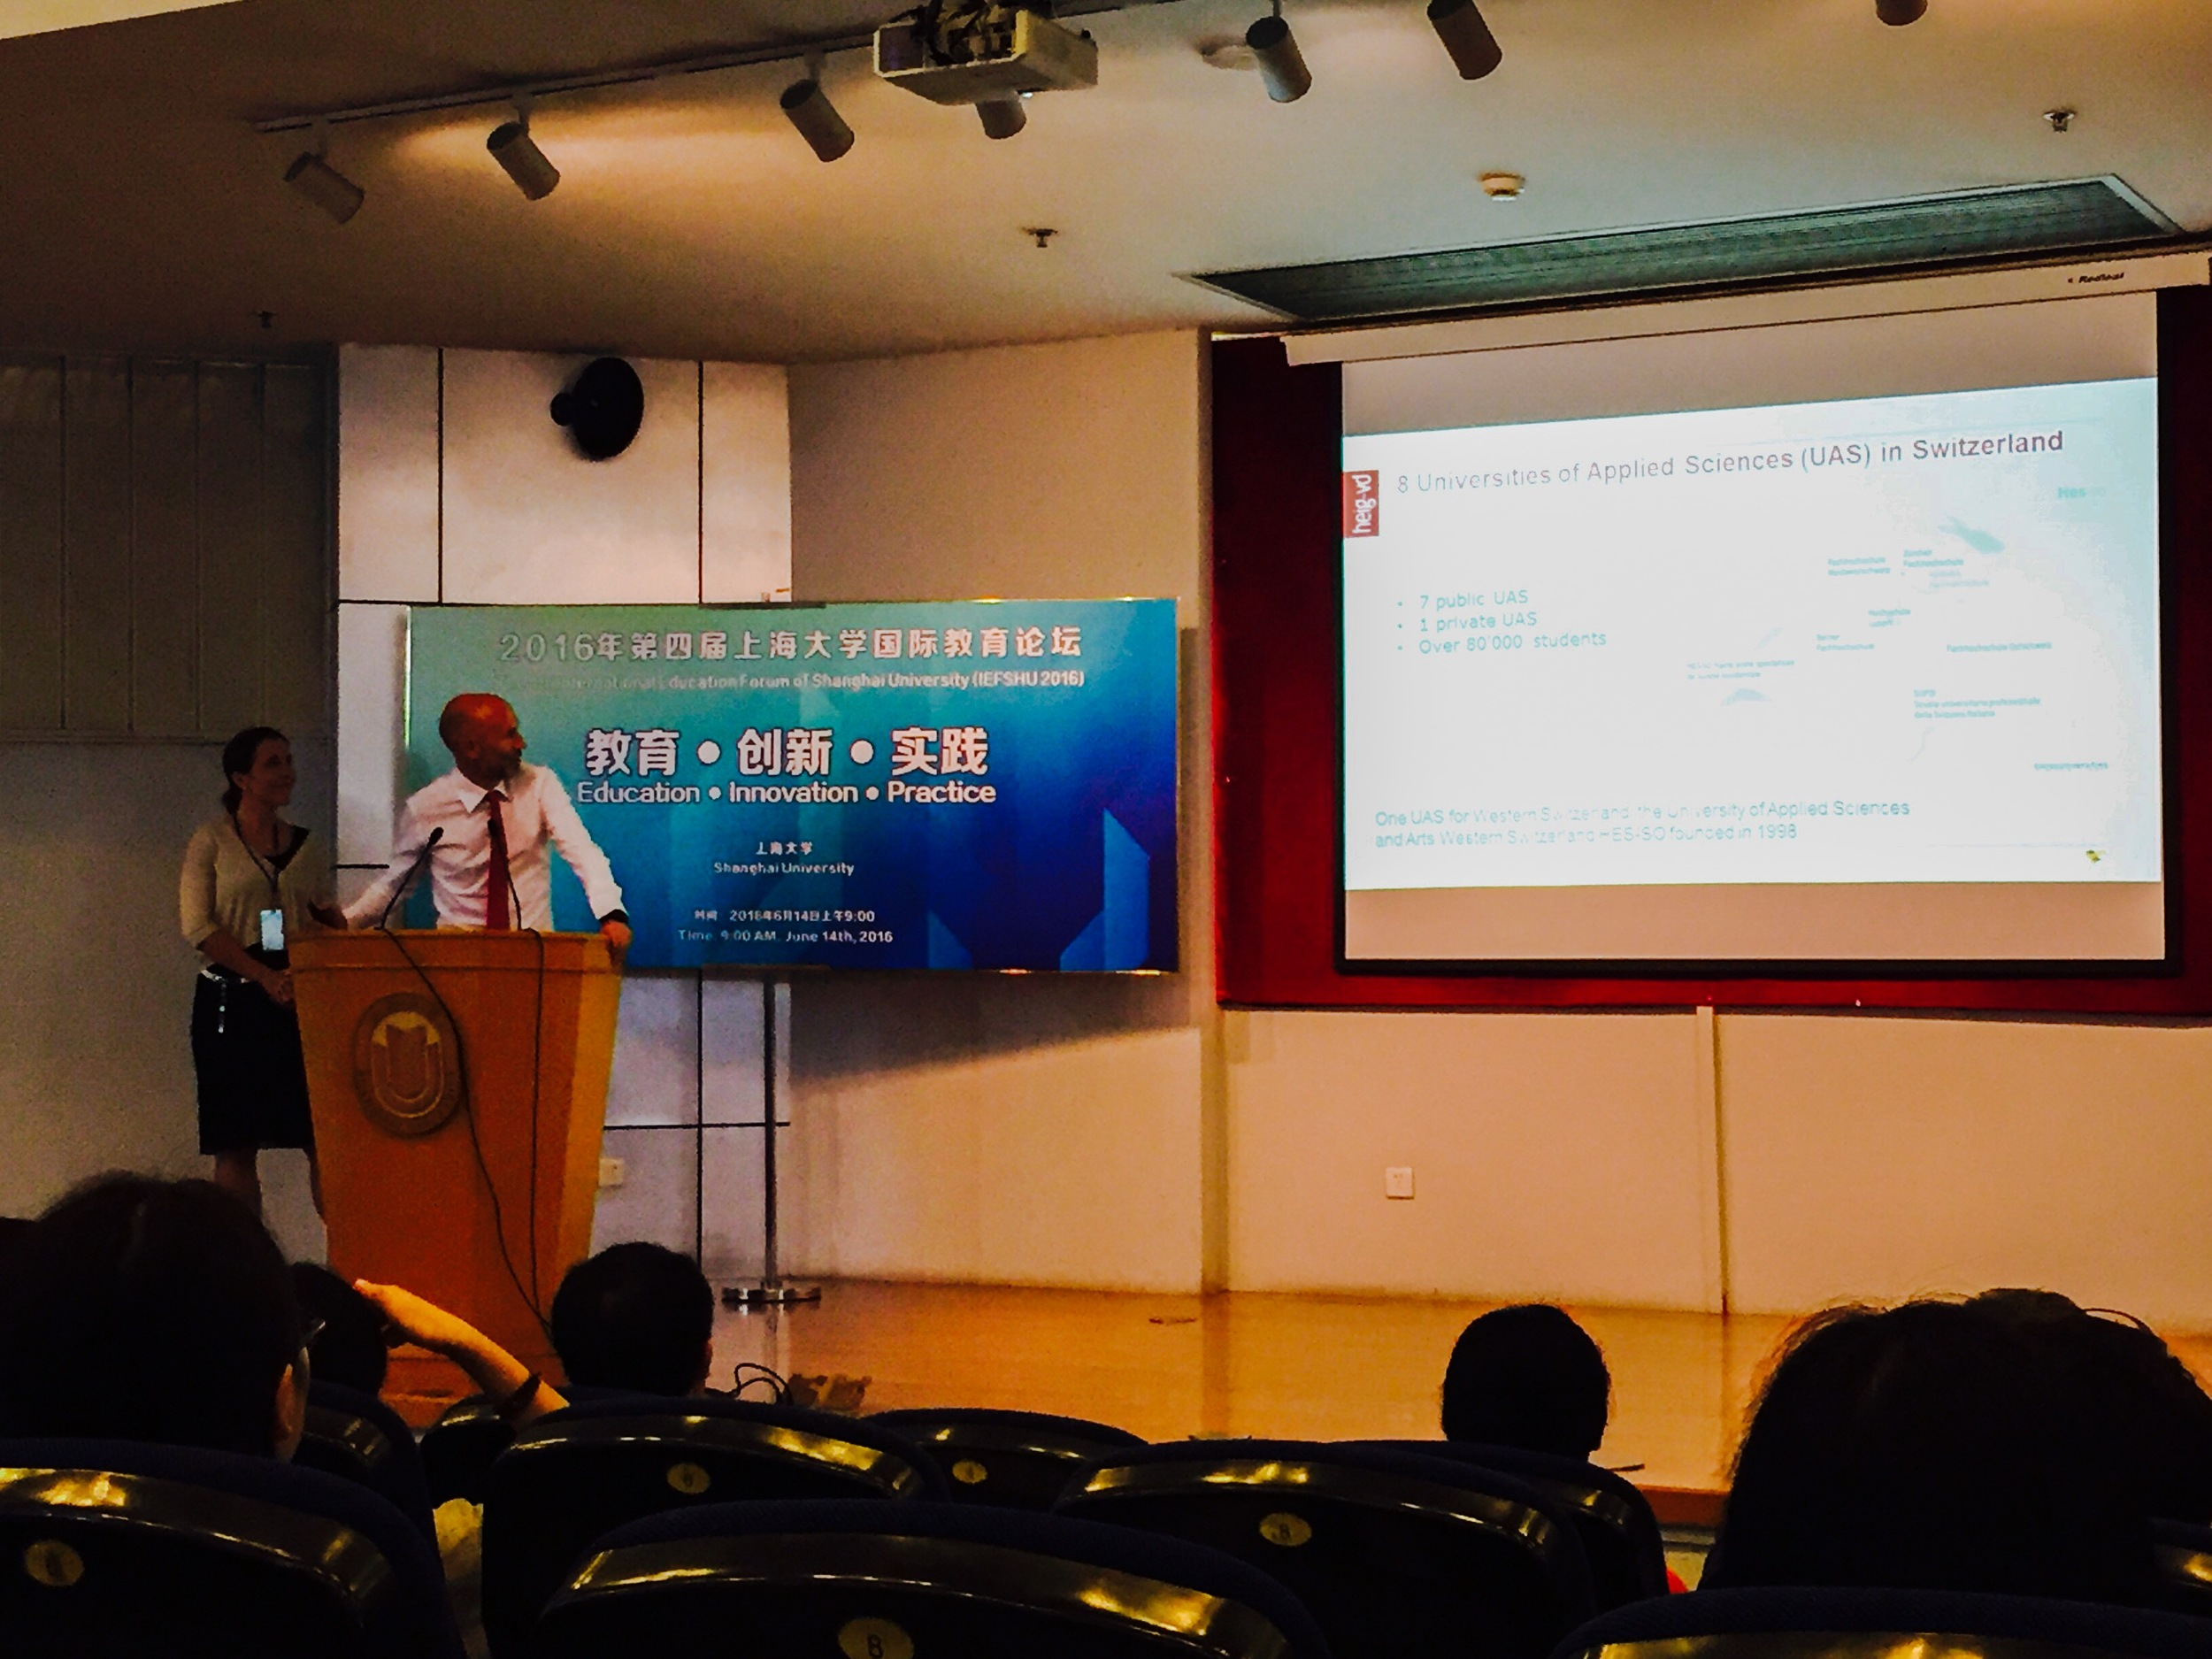 Our CEO Pascal was presenting the Swiss higher education system to Chinese students